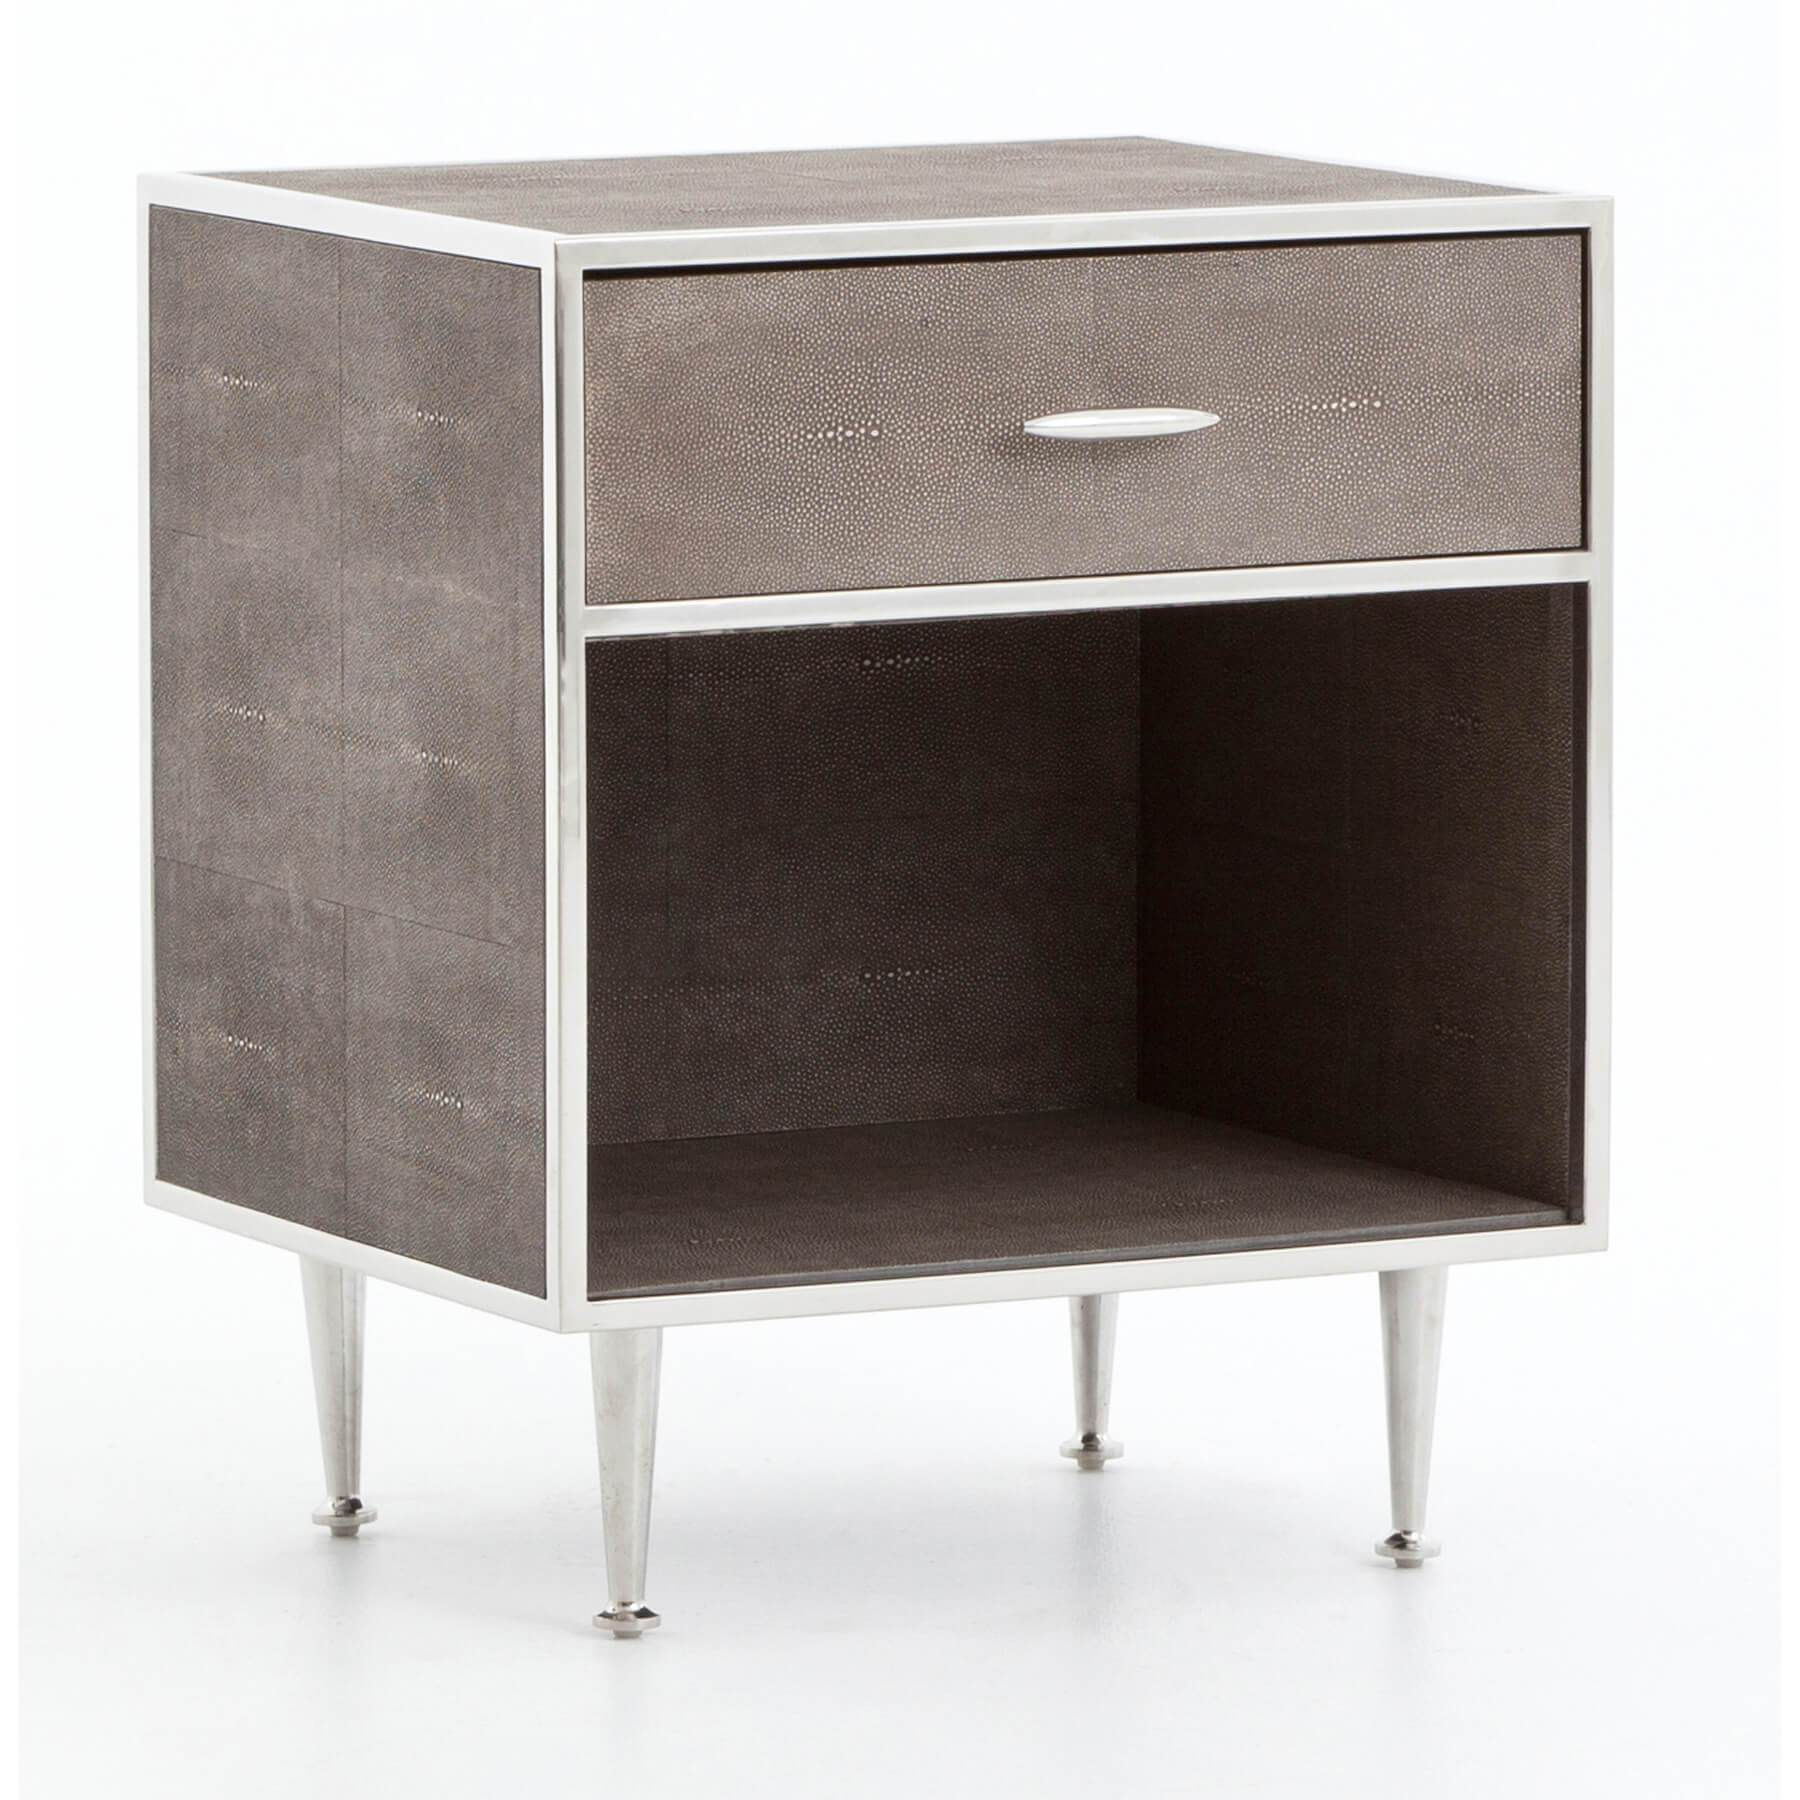 promo code 3755f d7997 Shagreen Bedside Table, Stainless – High Fashion Home